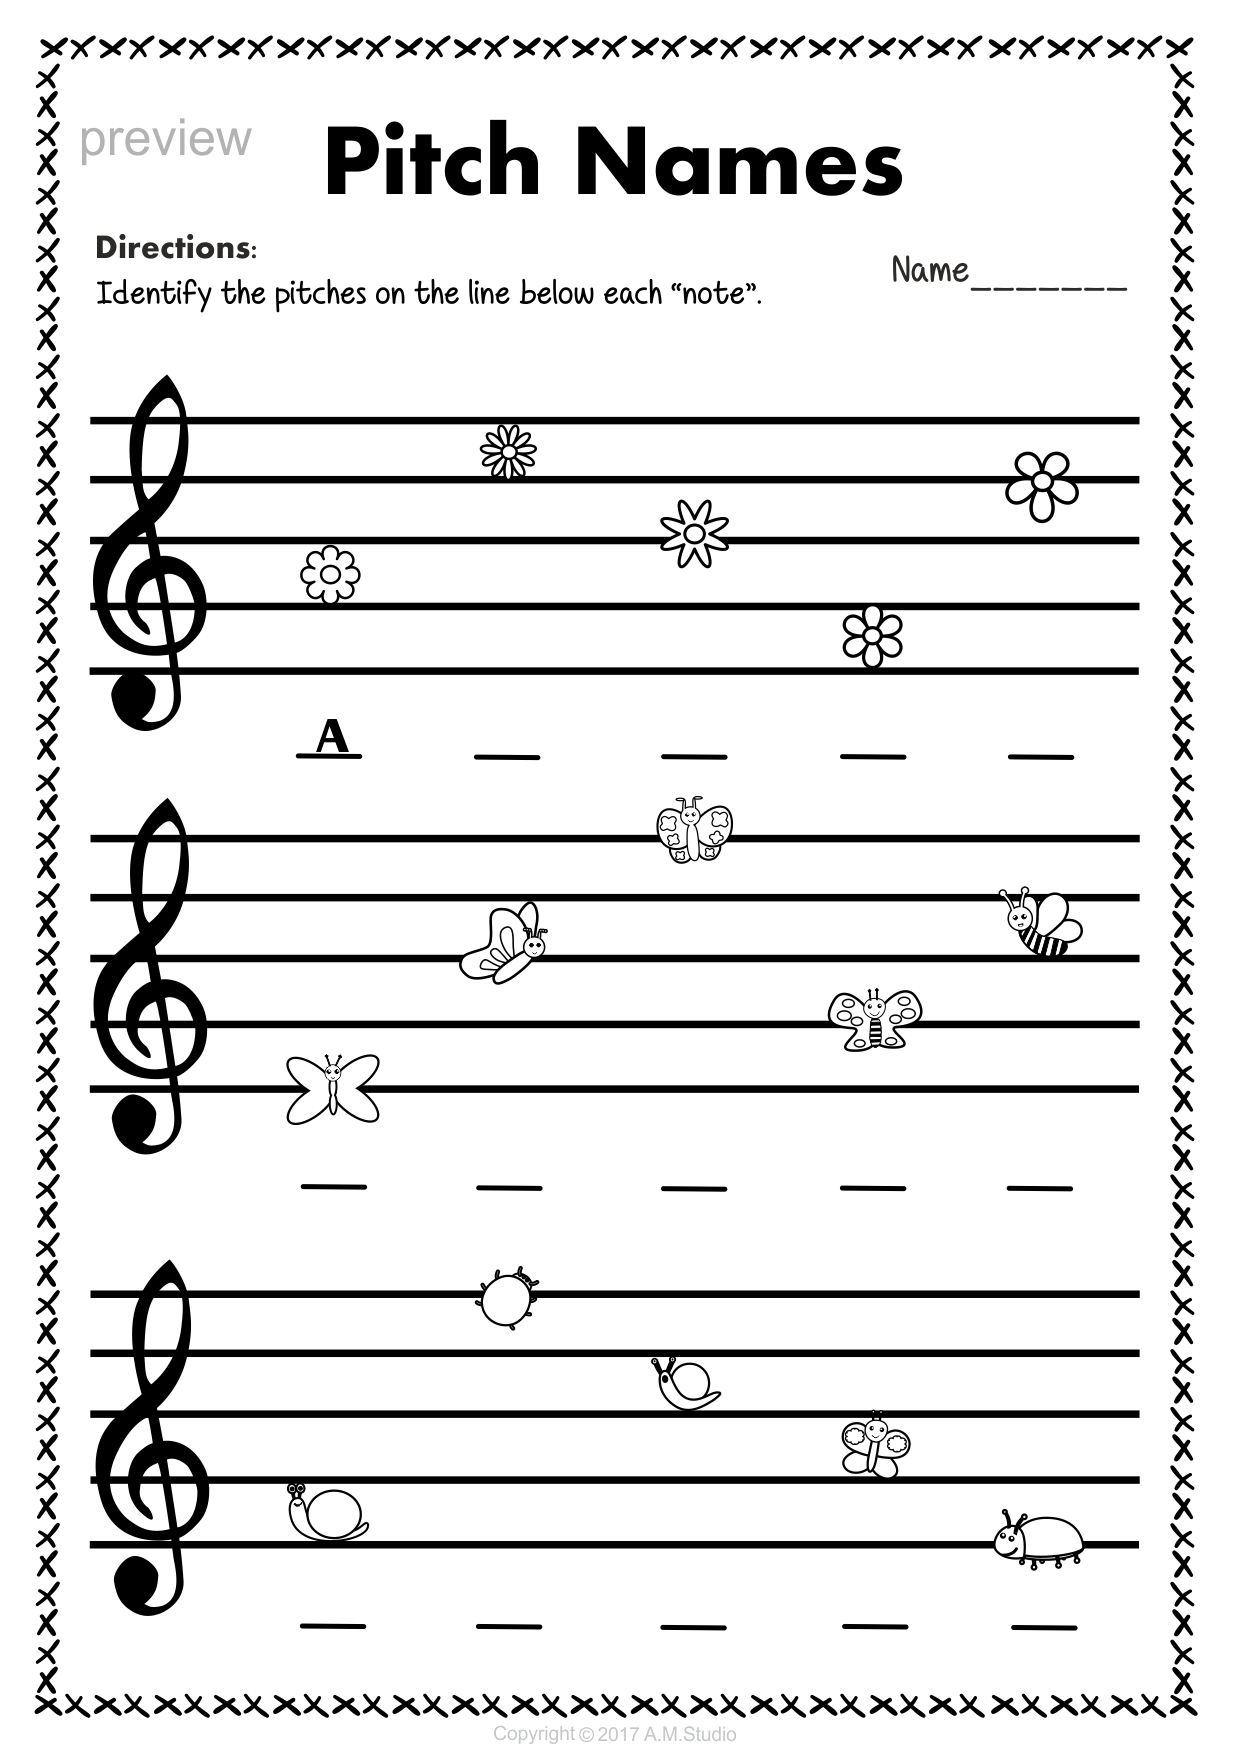 worksheet Note Name Worksheets this set of 10 music worksheets spring themed is designed to help bass clef note naming for anastasiya multimedia studio